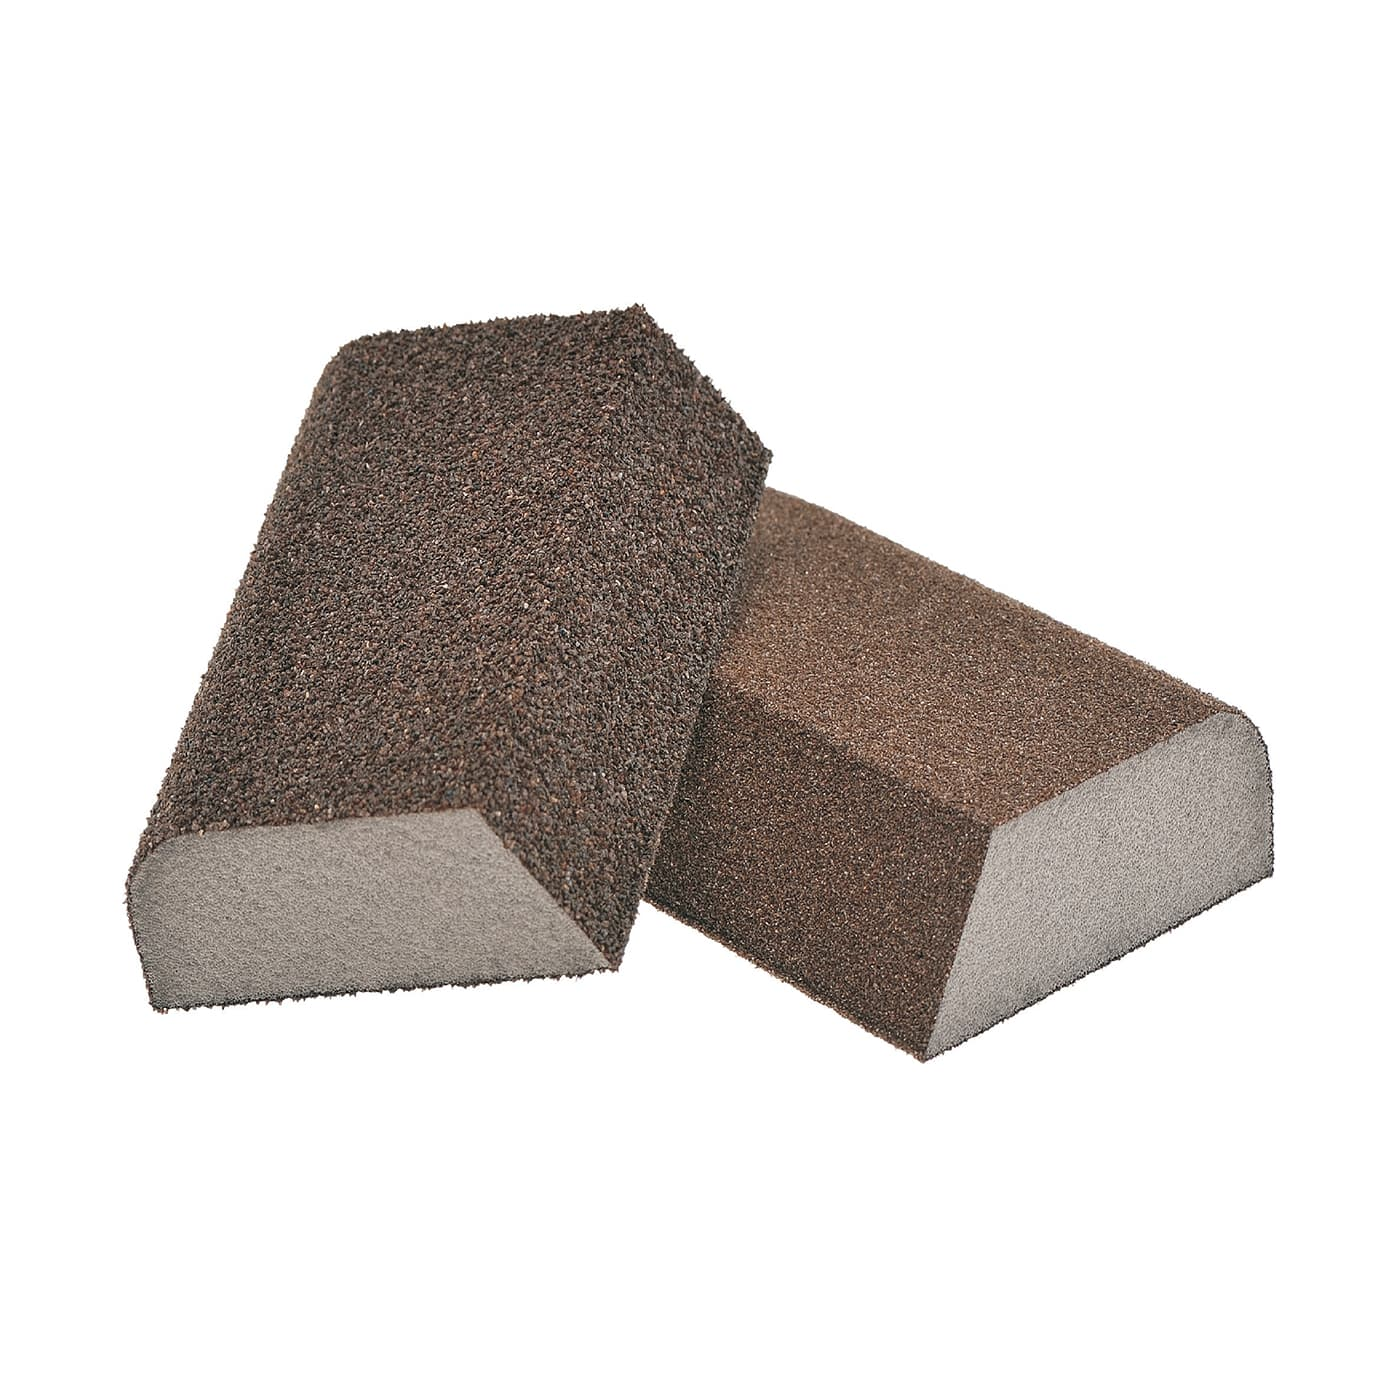 smirdex-sanding-sponges-4x4-combi,wet or dry sanding, wood,metal applications